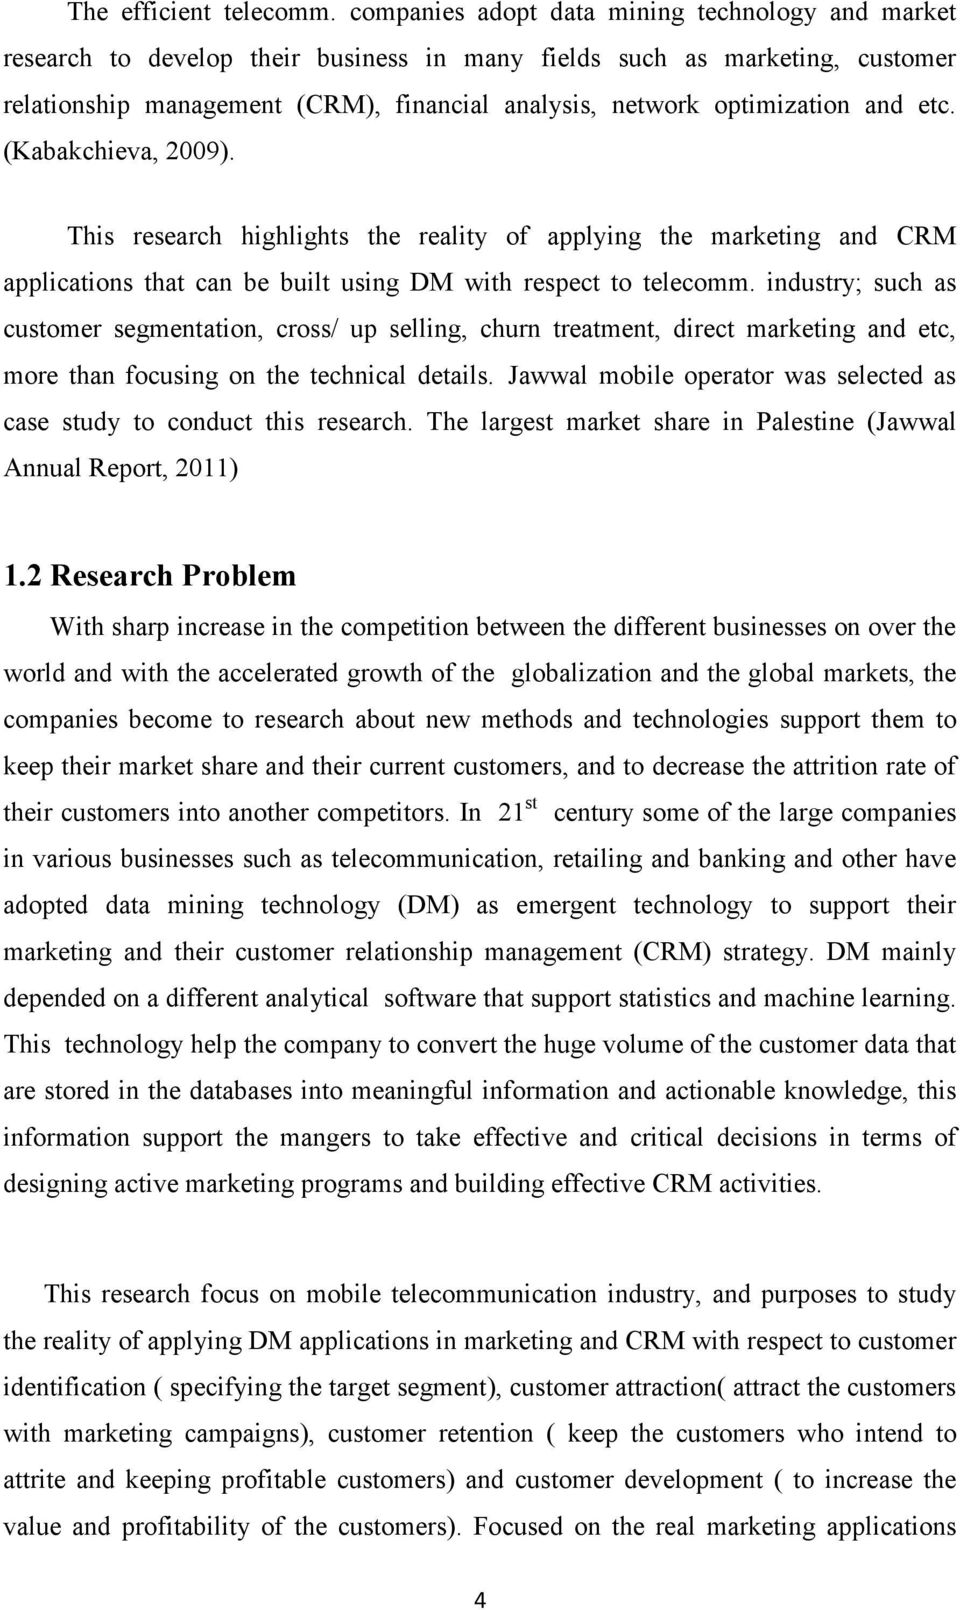 and etc. (Kabakchieva, 2009). This research highlights the reality of applying the marketing and CRM applications that can be built using DM with respect to telecomm.